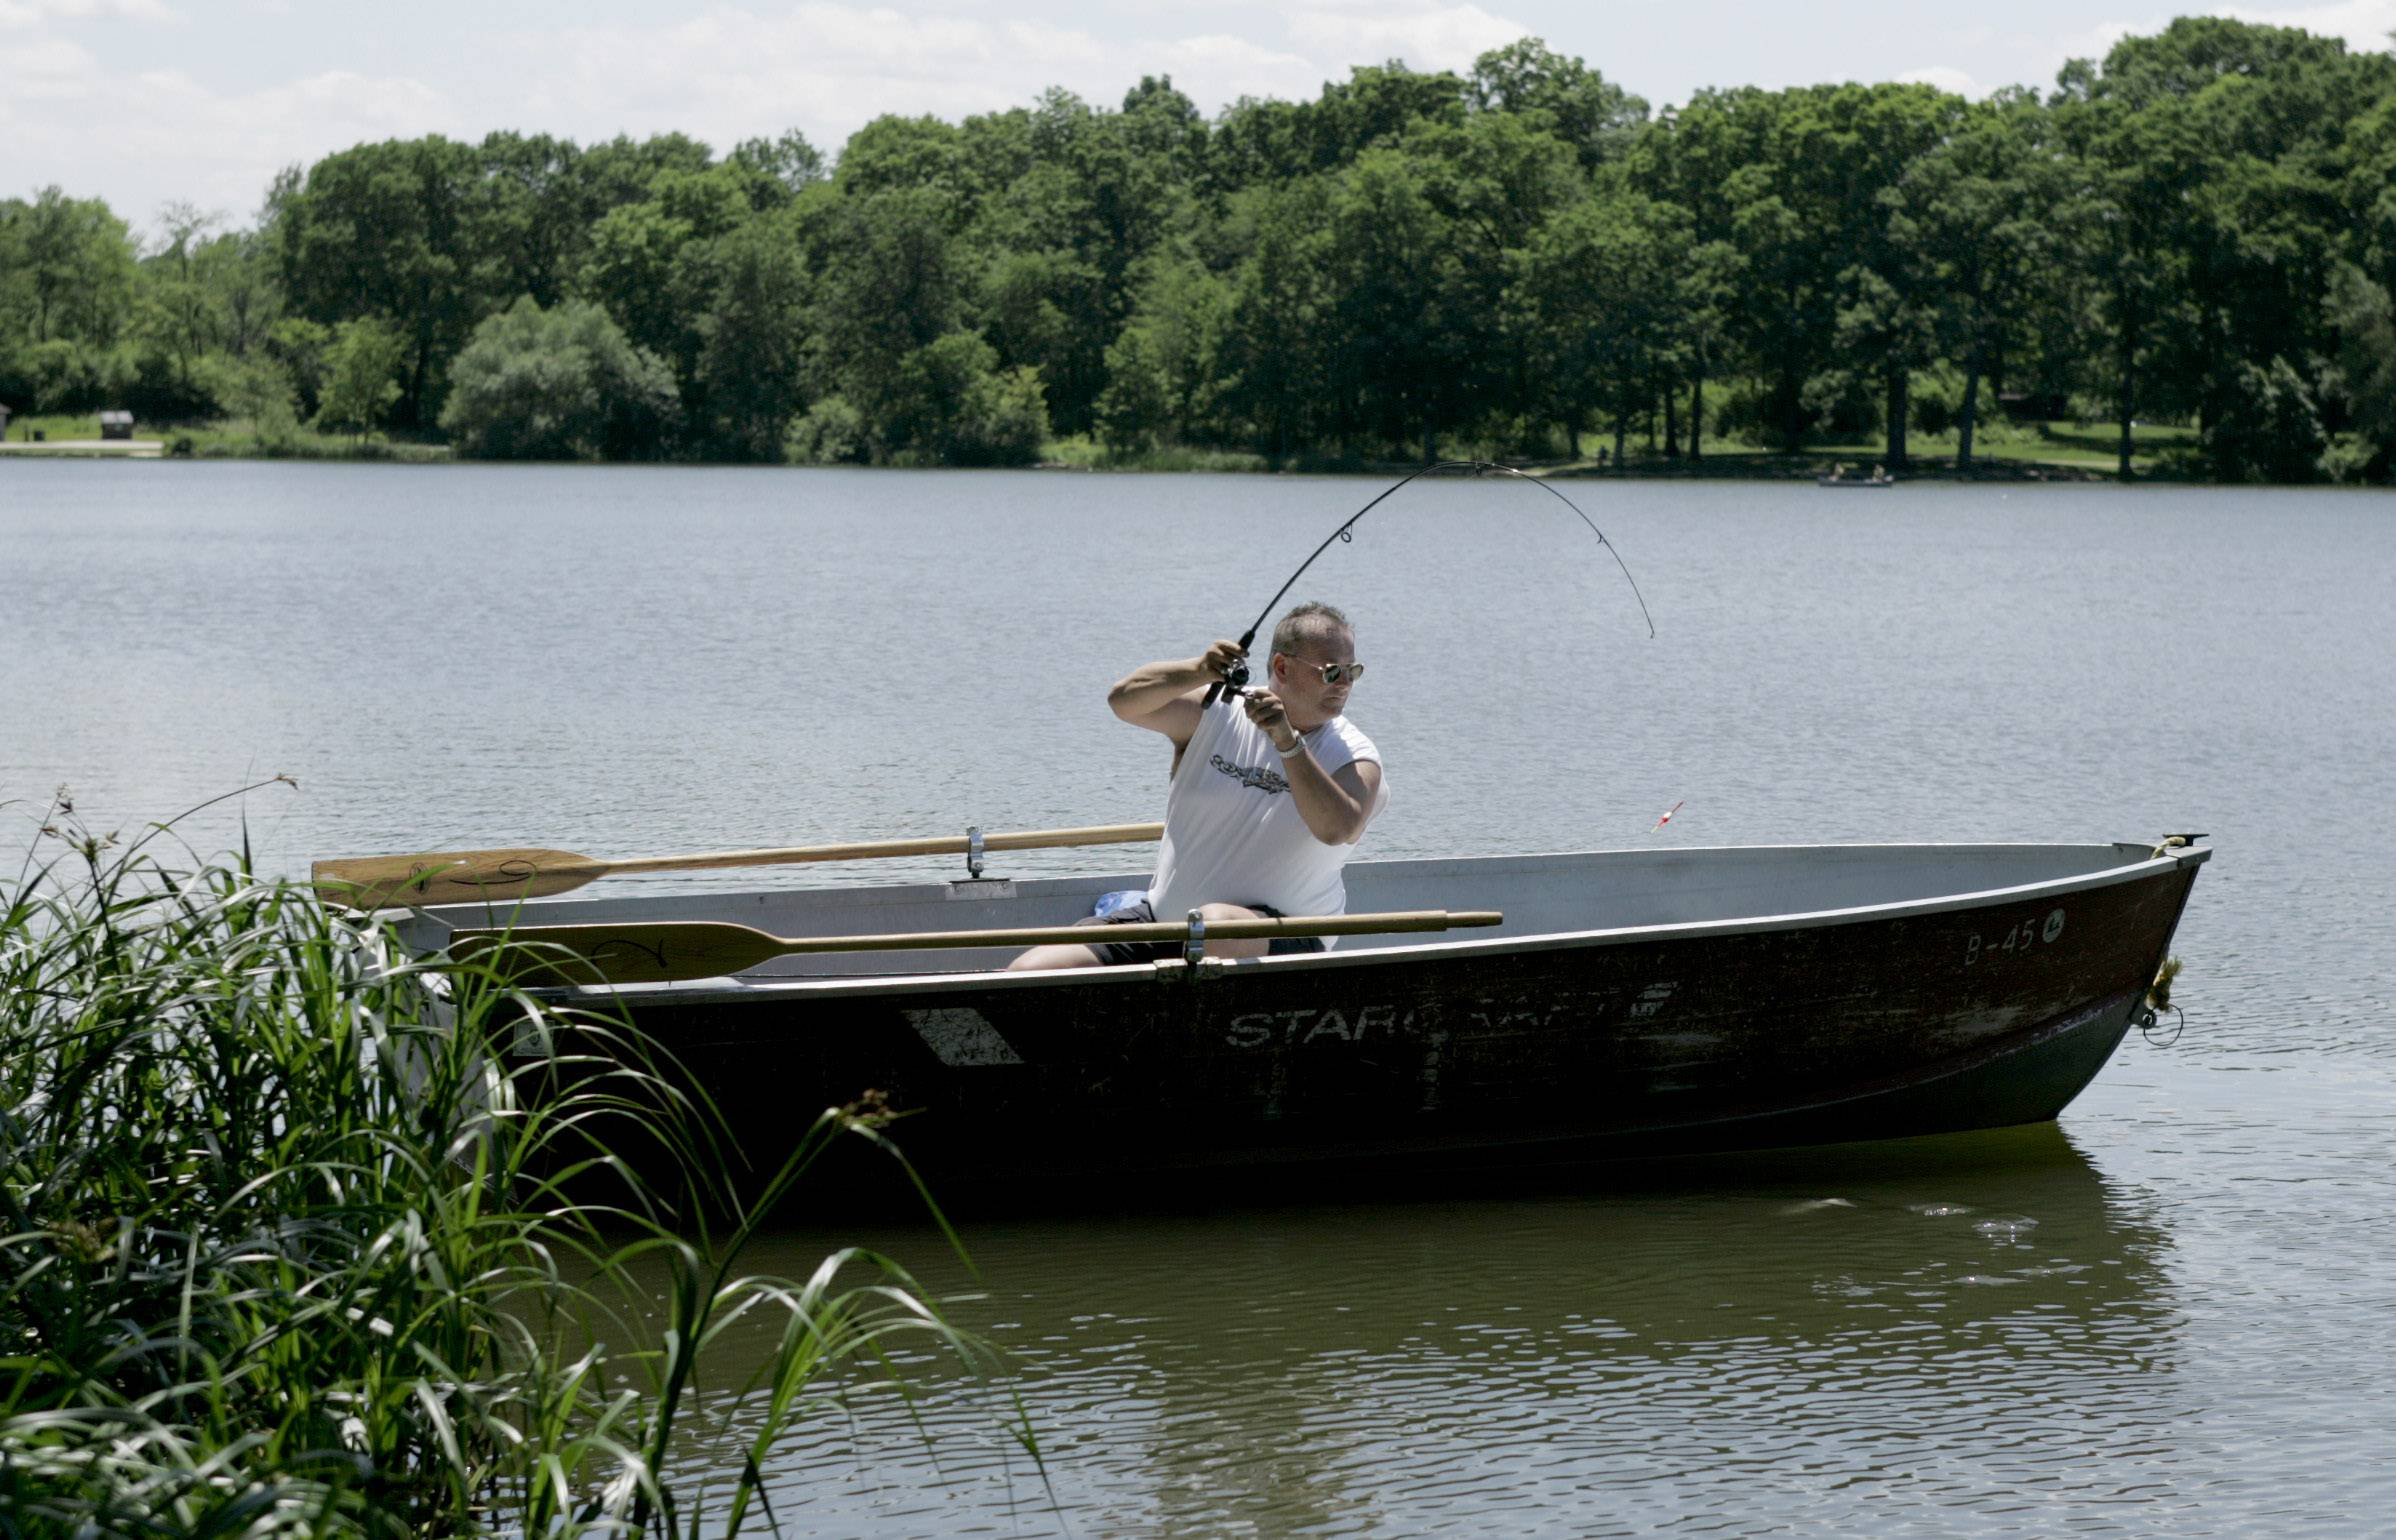 Boating season has begun in Herrick Lake Forest Preserve in Wheaton and Blackwell Forest Preserve near Warrenville. Rowboats, canoes and kayaks can be rented by the hour or the day, and visitors to Blackwell's Silver Lake can launch their own craft with the proper permits.